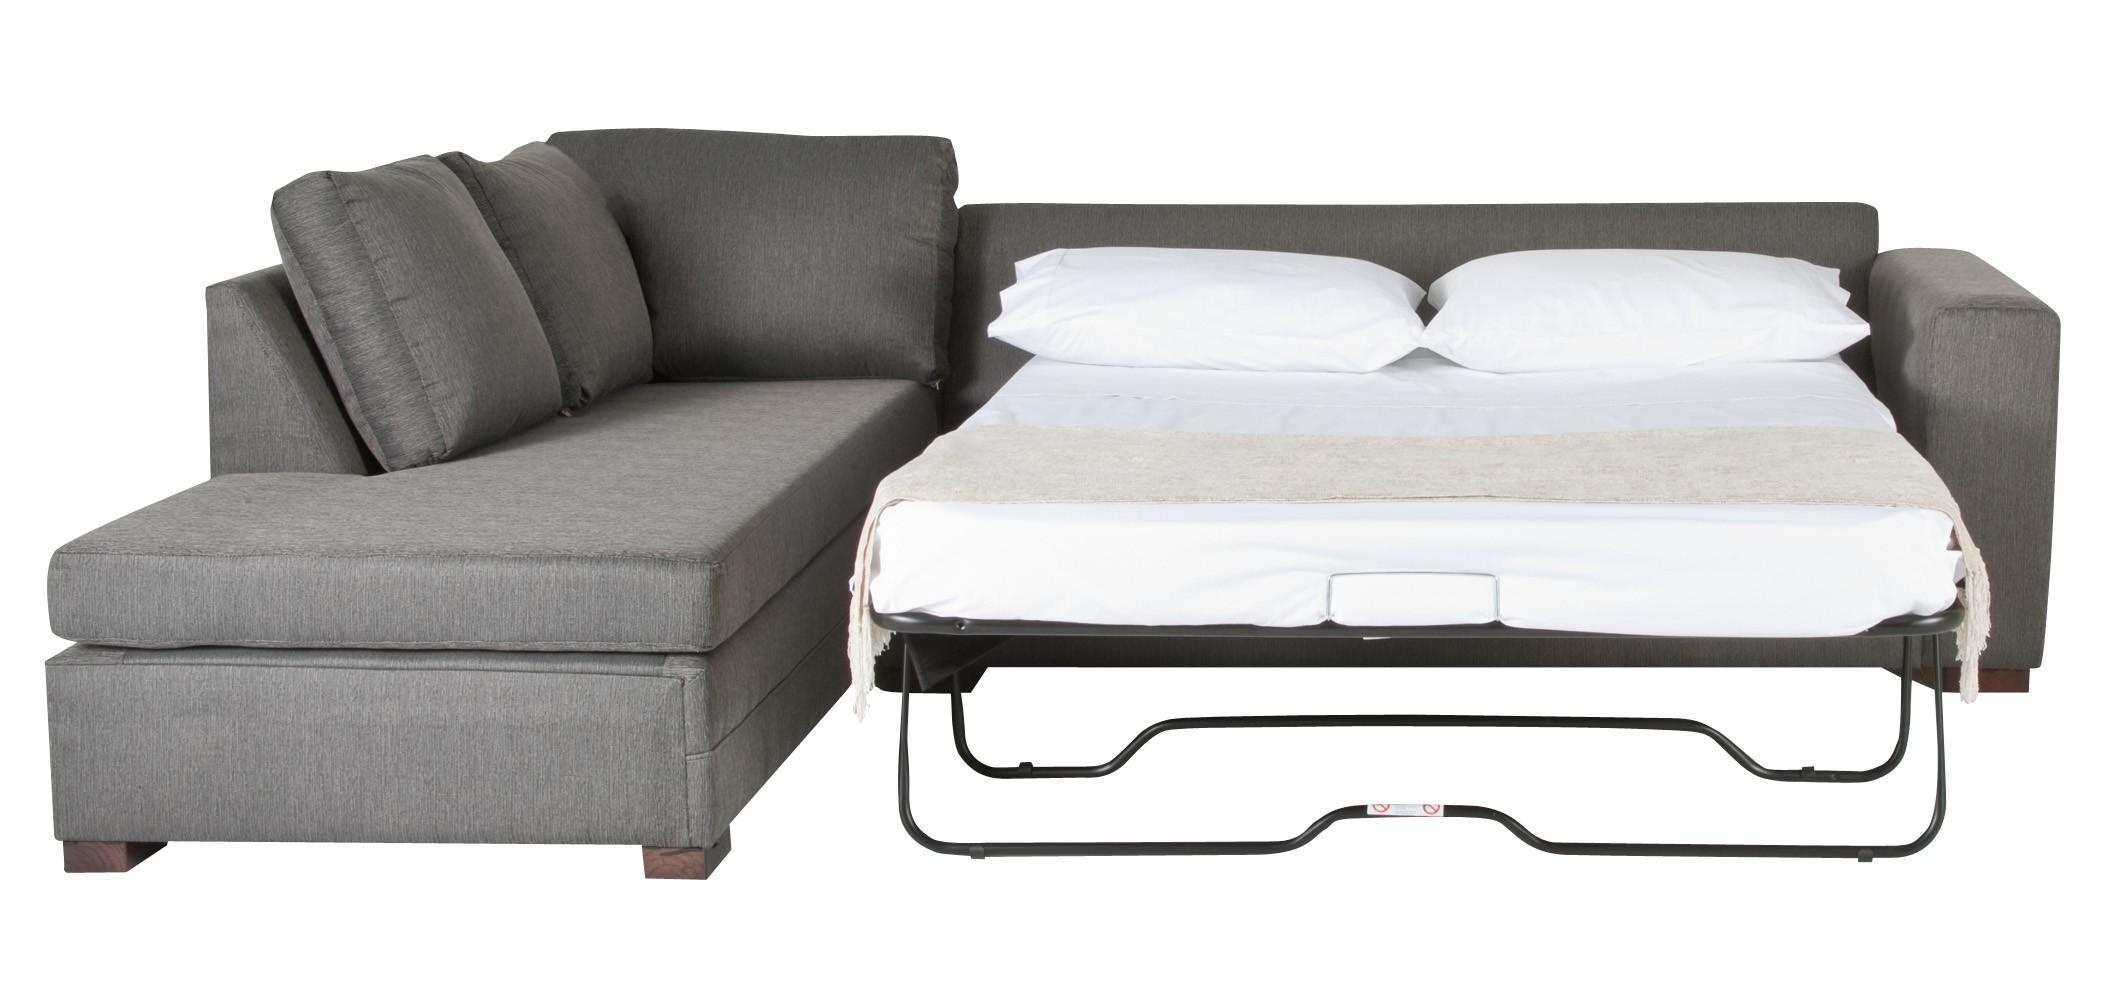 Sectional Sleeper Sofas On Sale – Tourdecarroll With Regard To Everyday Sleeper Sofas (View 16 of 20)